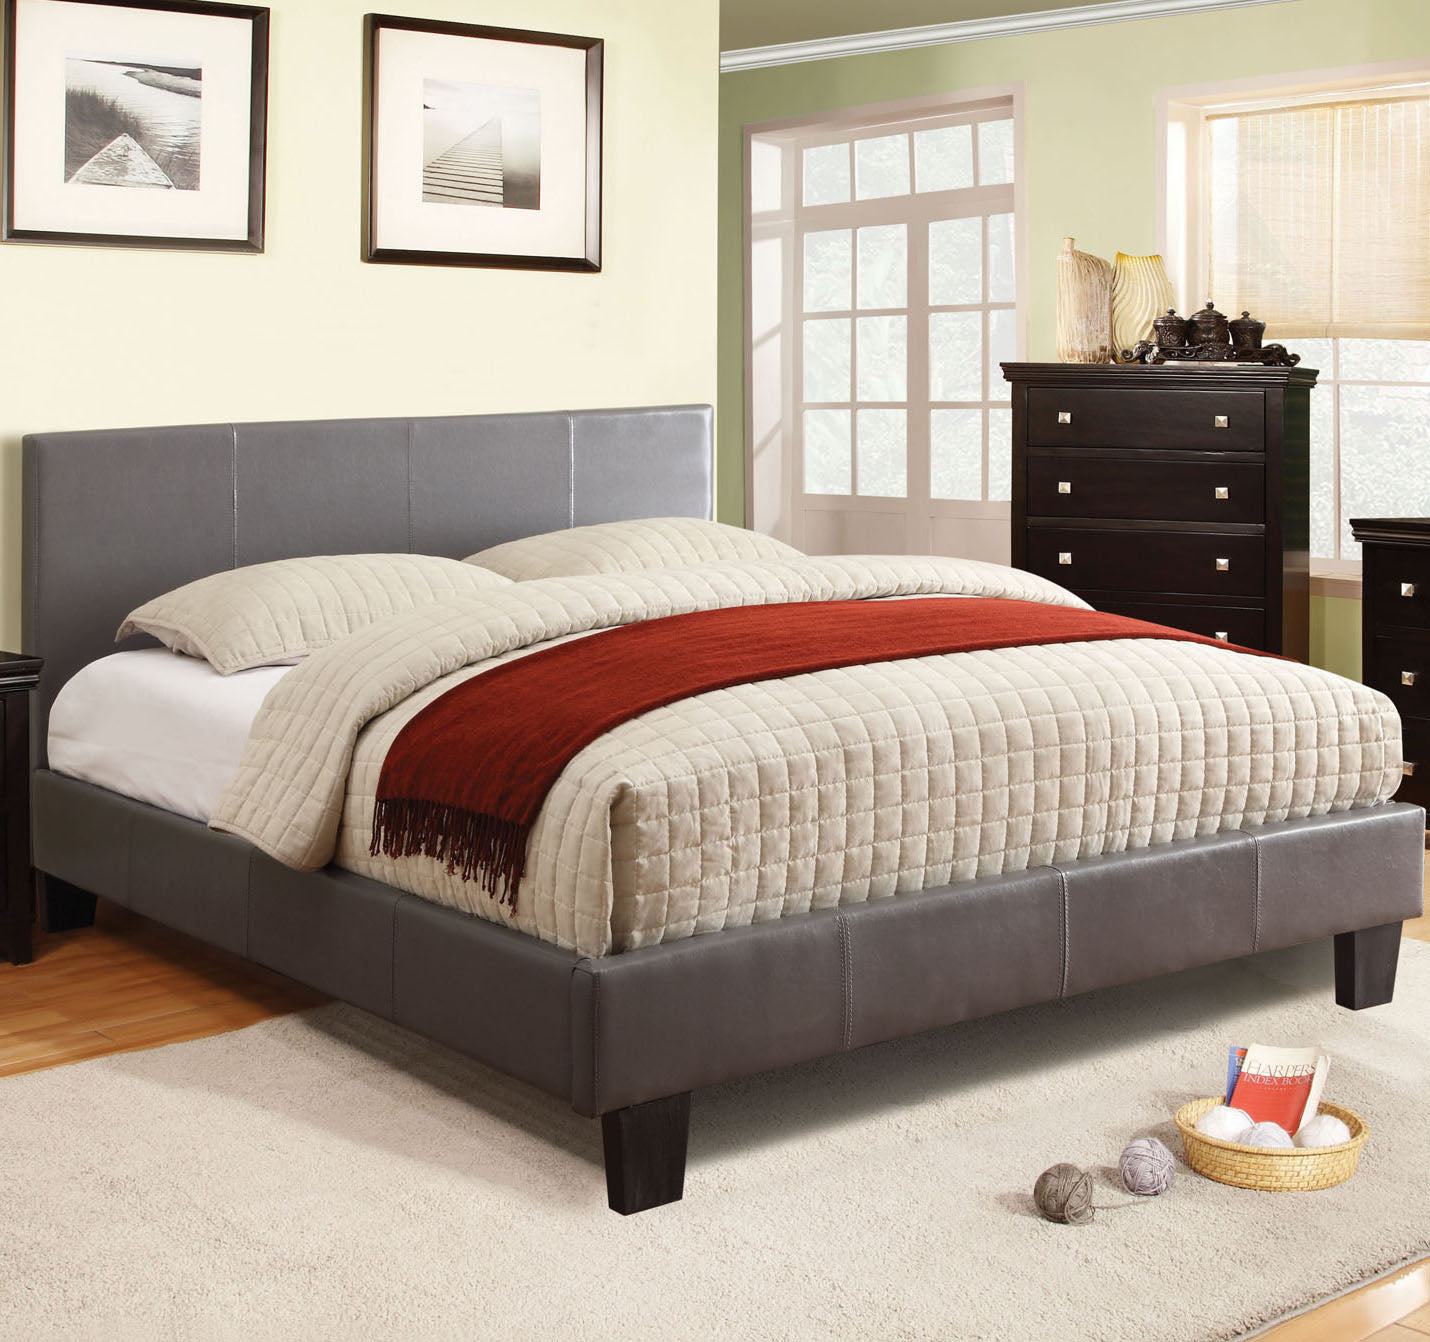 Winn Park CM7008GY-F Contemporary Gray Full Bed